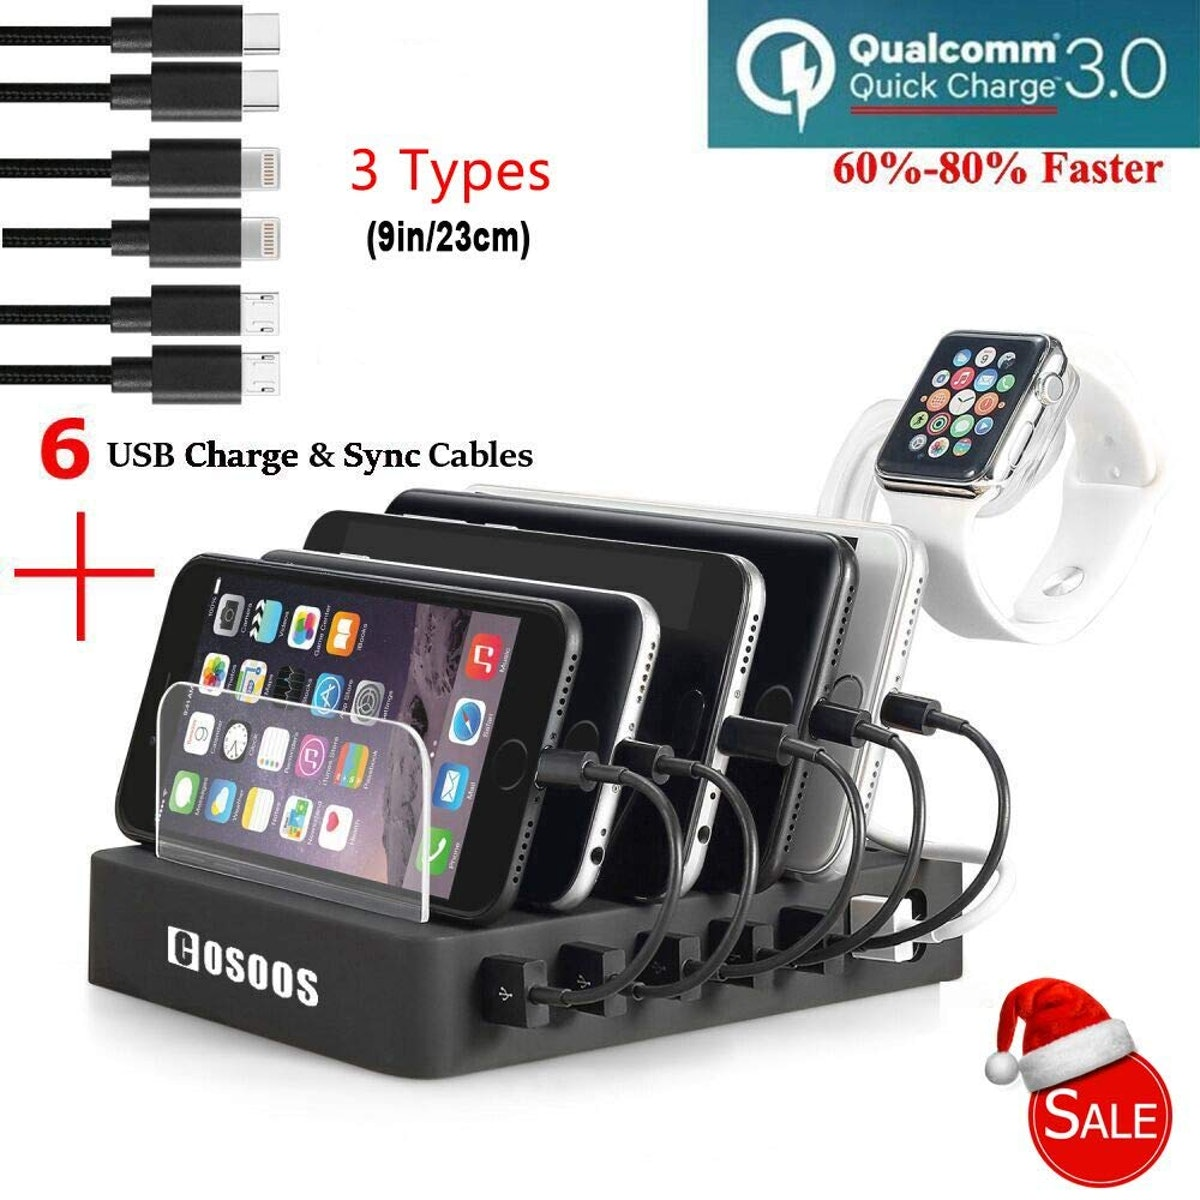 Simicore Smart Charging Station Dock And Organizer